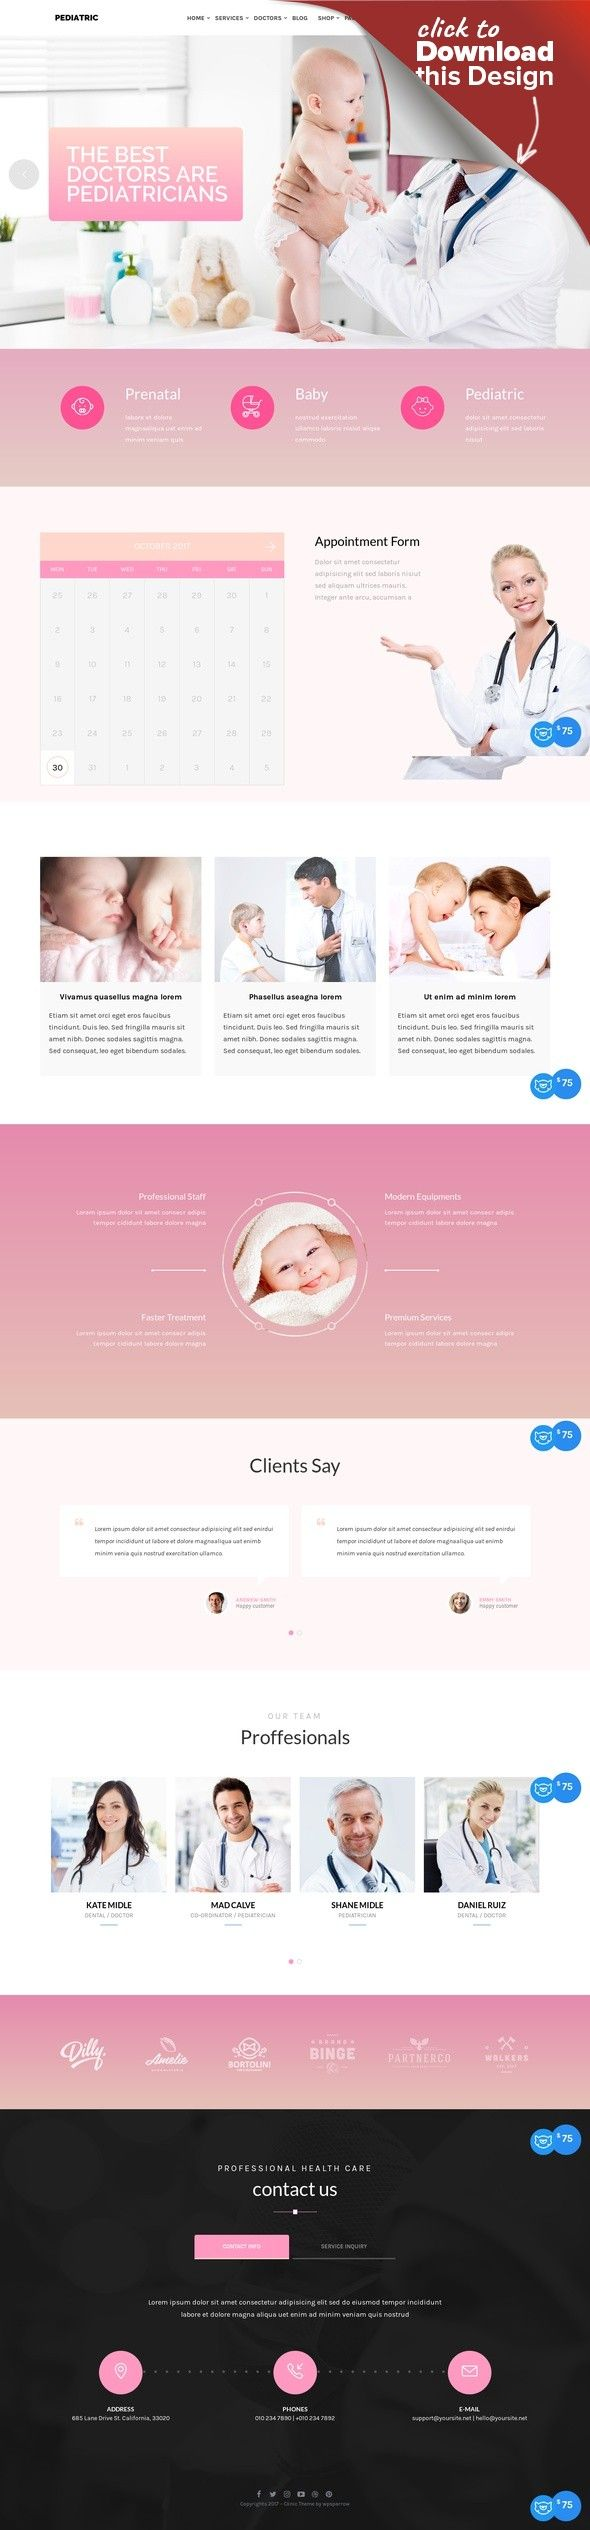 Clinic Health And Medical Center Wordpress Theme Cms Blog